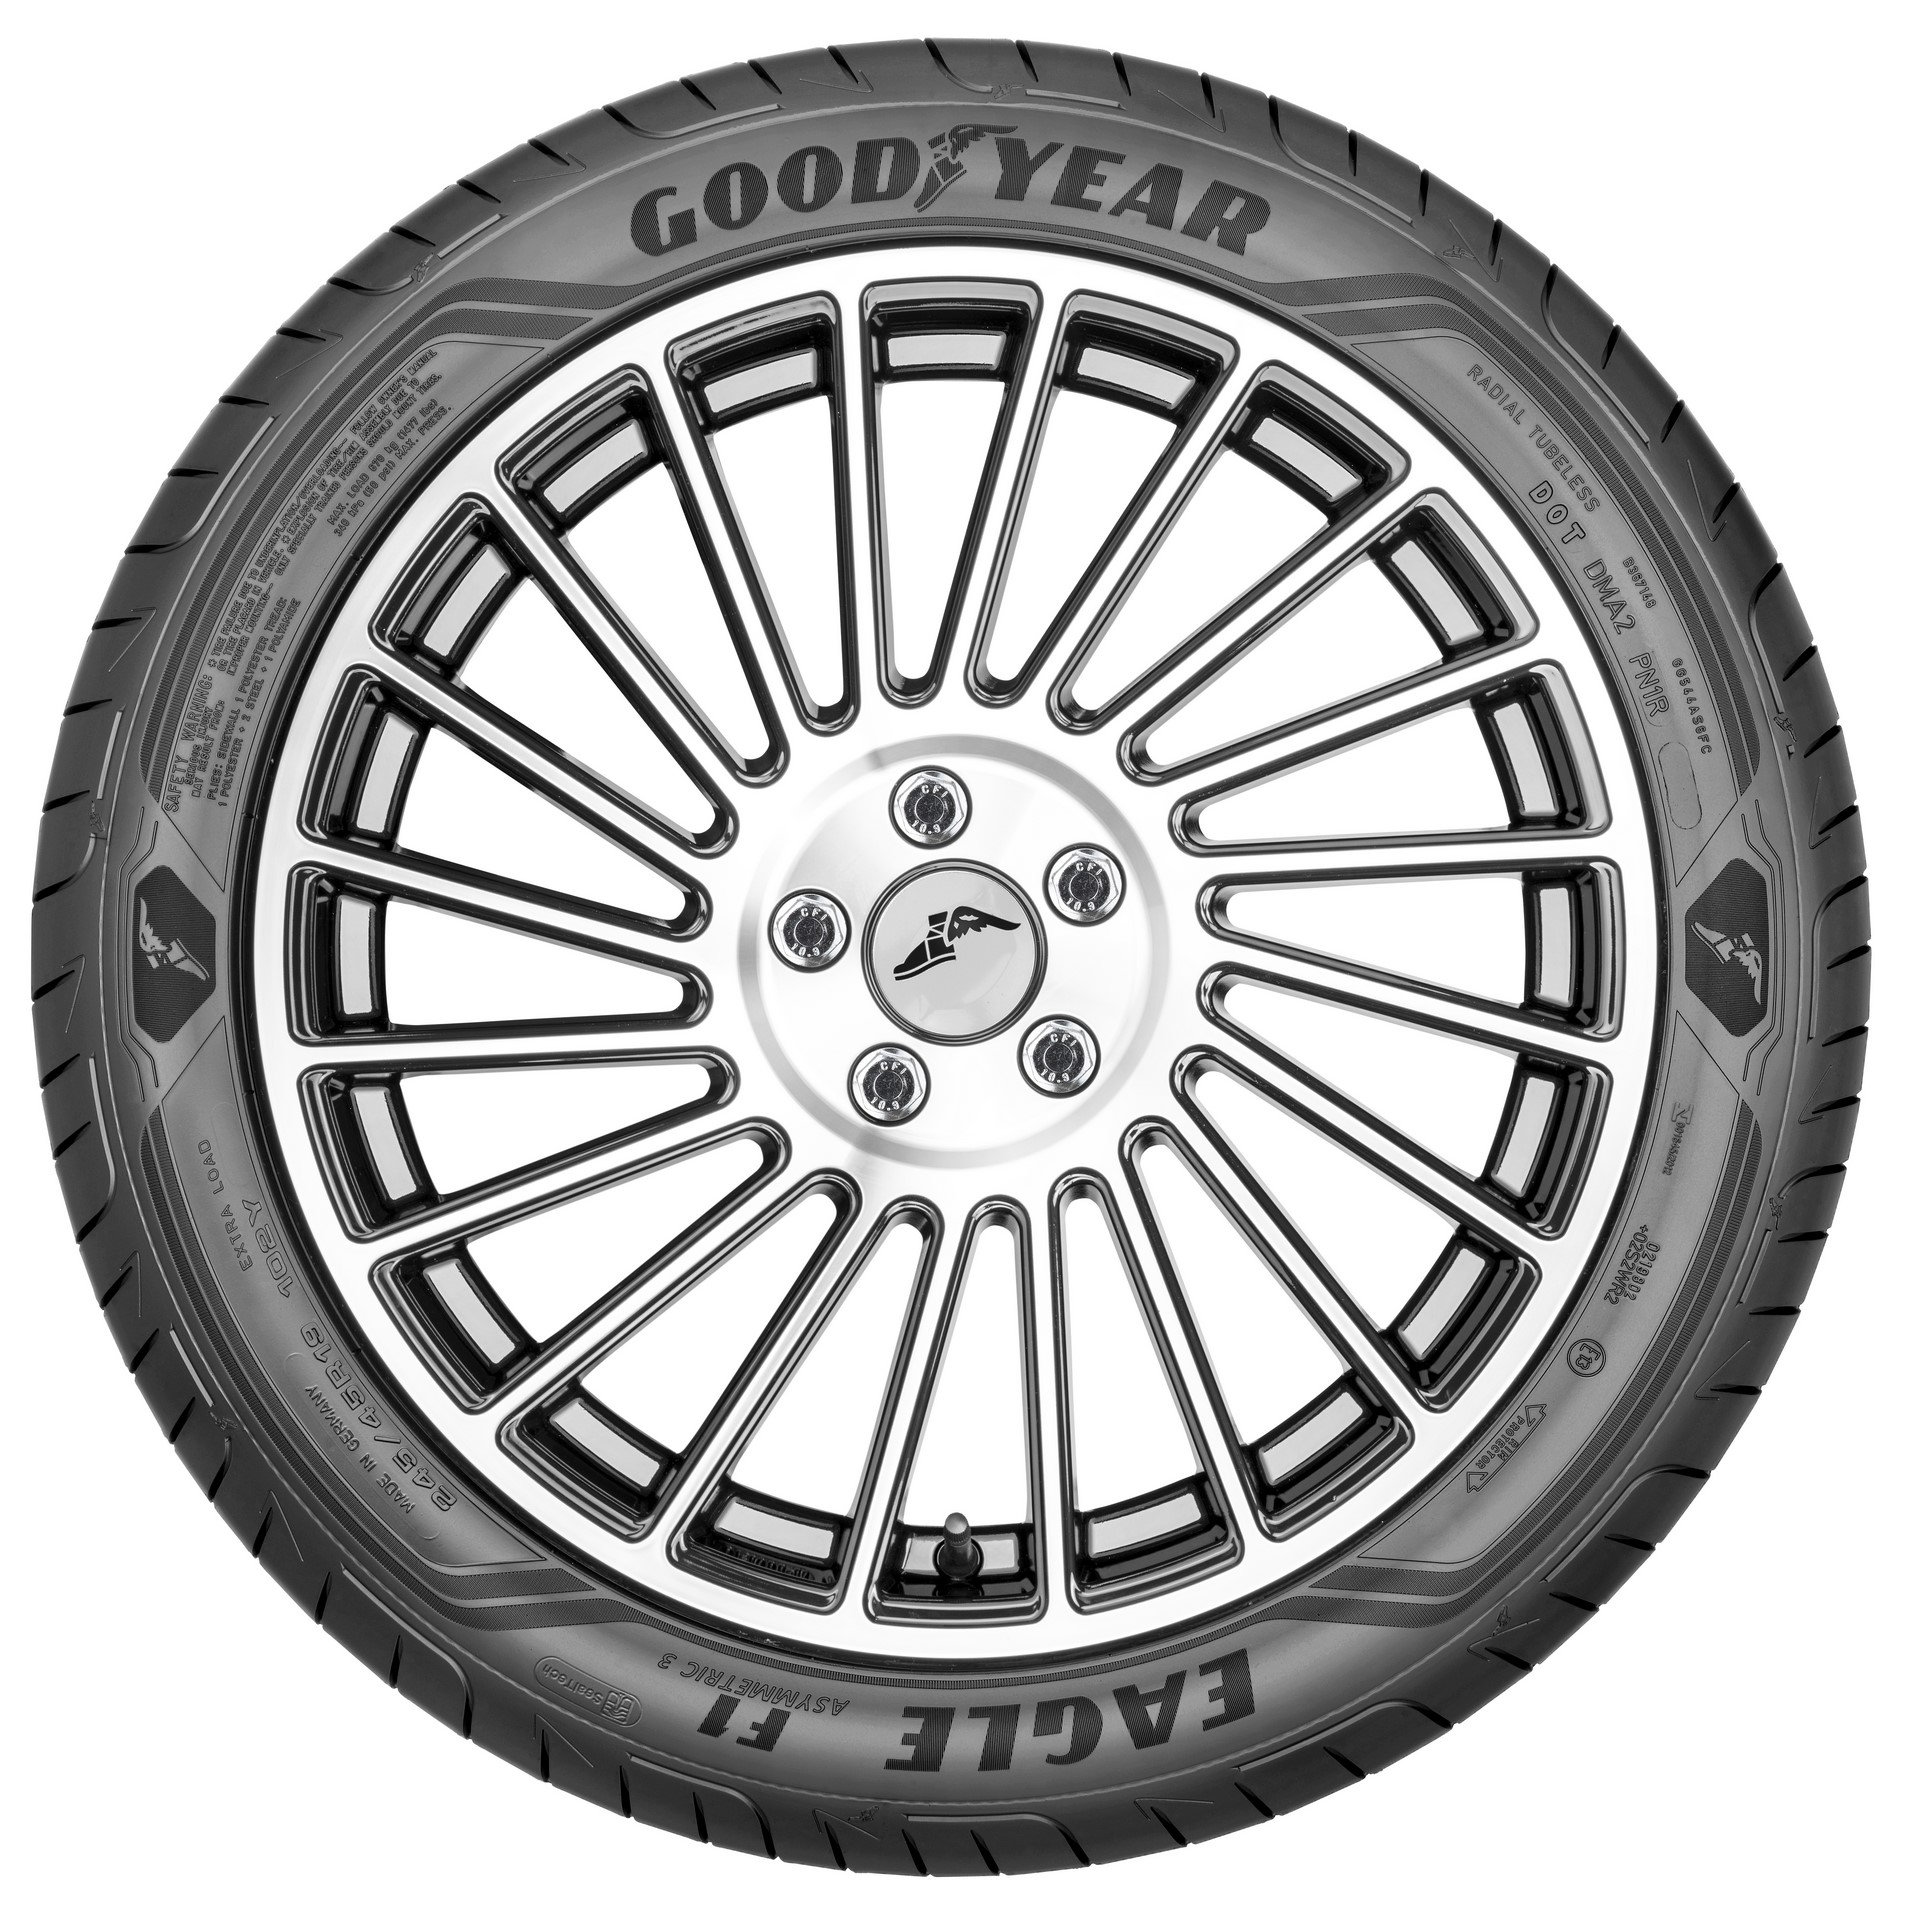 Goodyear Intelligent Tire (4)